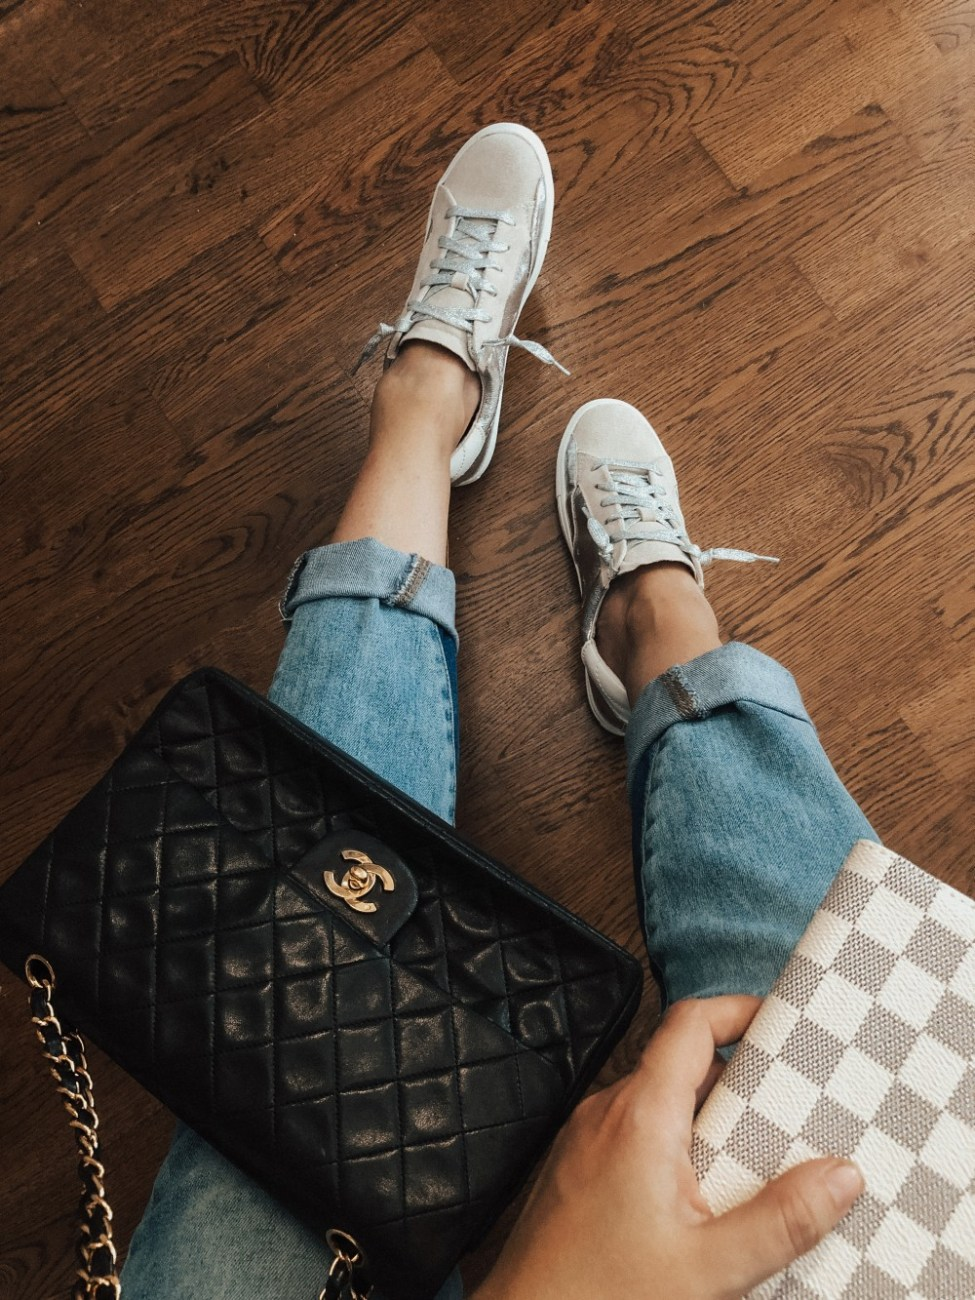 Look for Less - sharing my favorite designer inspired pieces and designer favorites. #lookforless #designerbag #designerinspired #chanel #louisvuitton #goldengoose